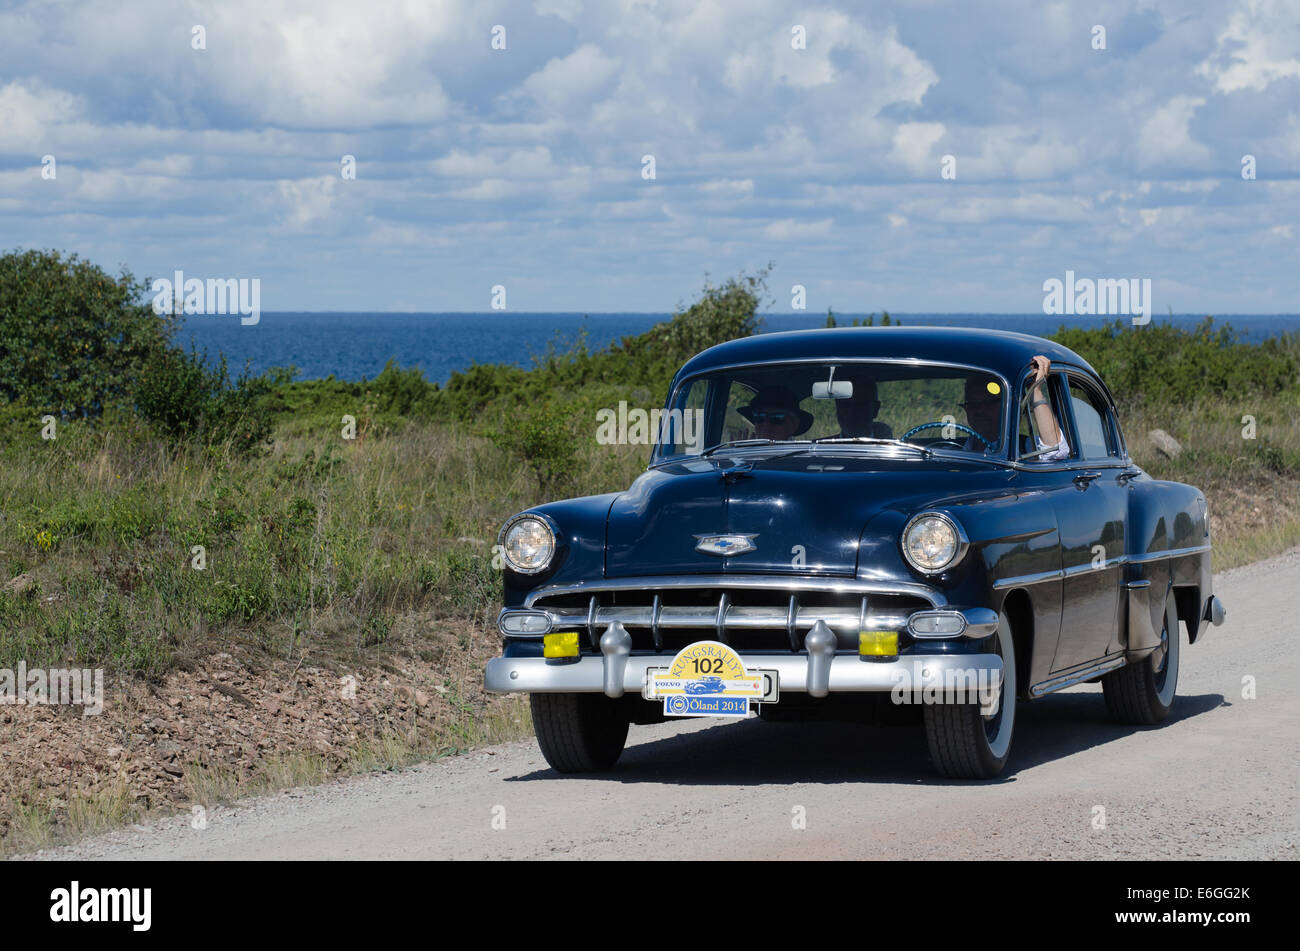 1954 Chevrolet Bel Air Stock Photos In Oldtimer Rally At The Island Land Sweden